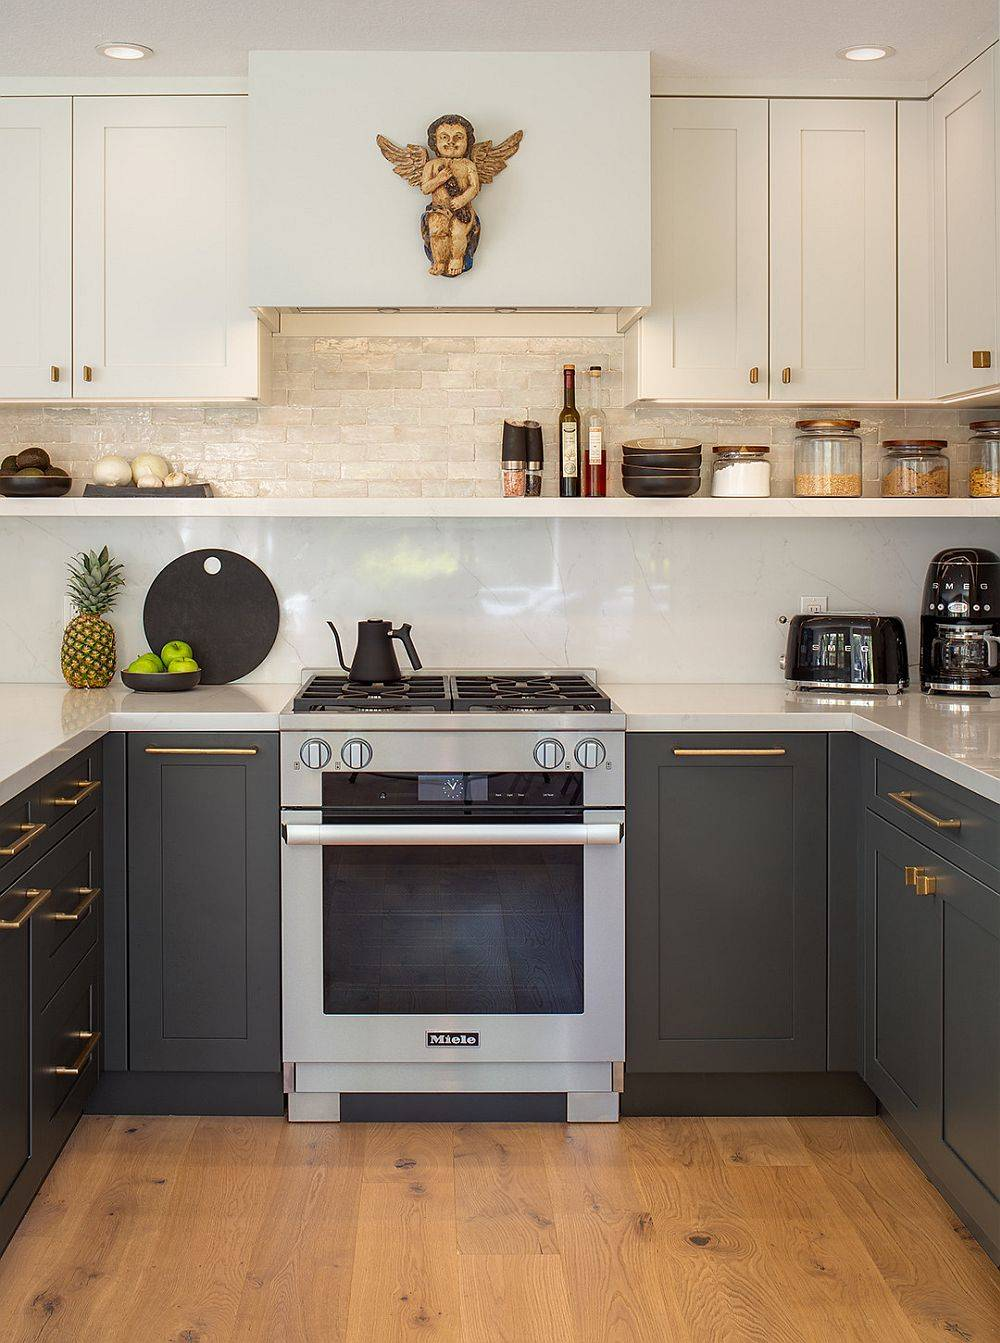 Add-an-island-to-the-kitchen-only-if-you-need-it-61613